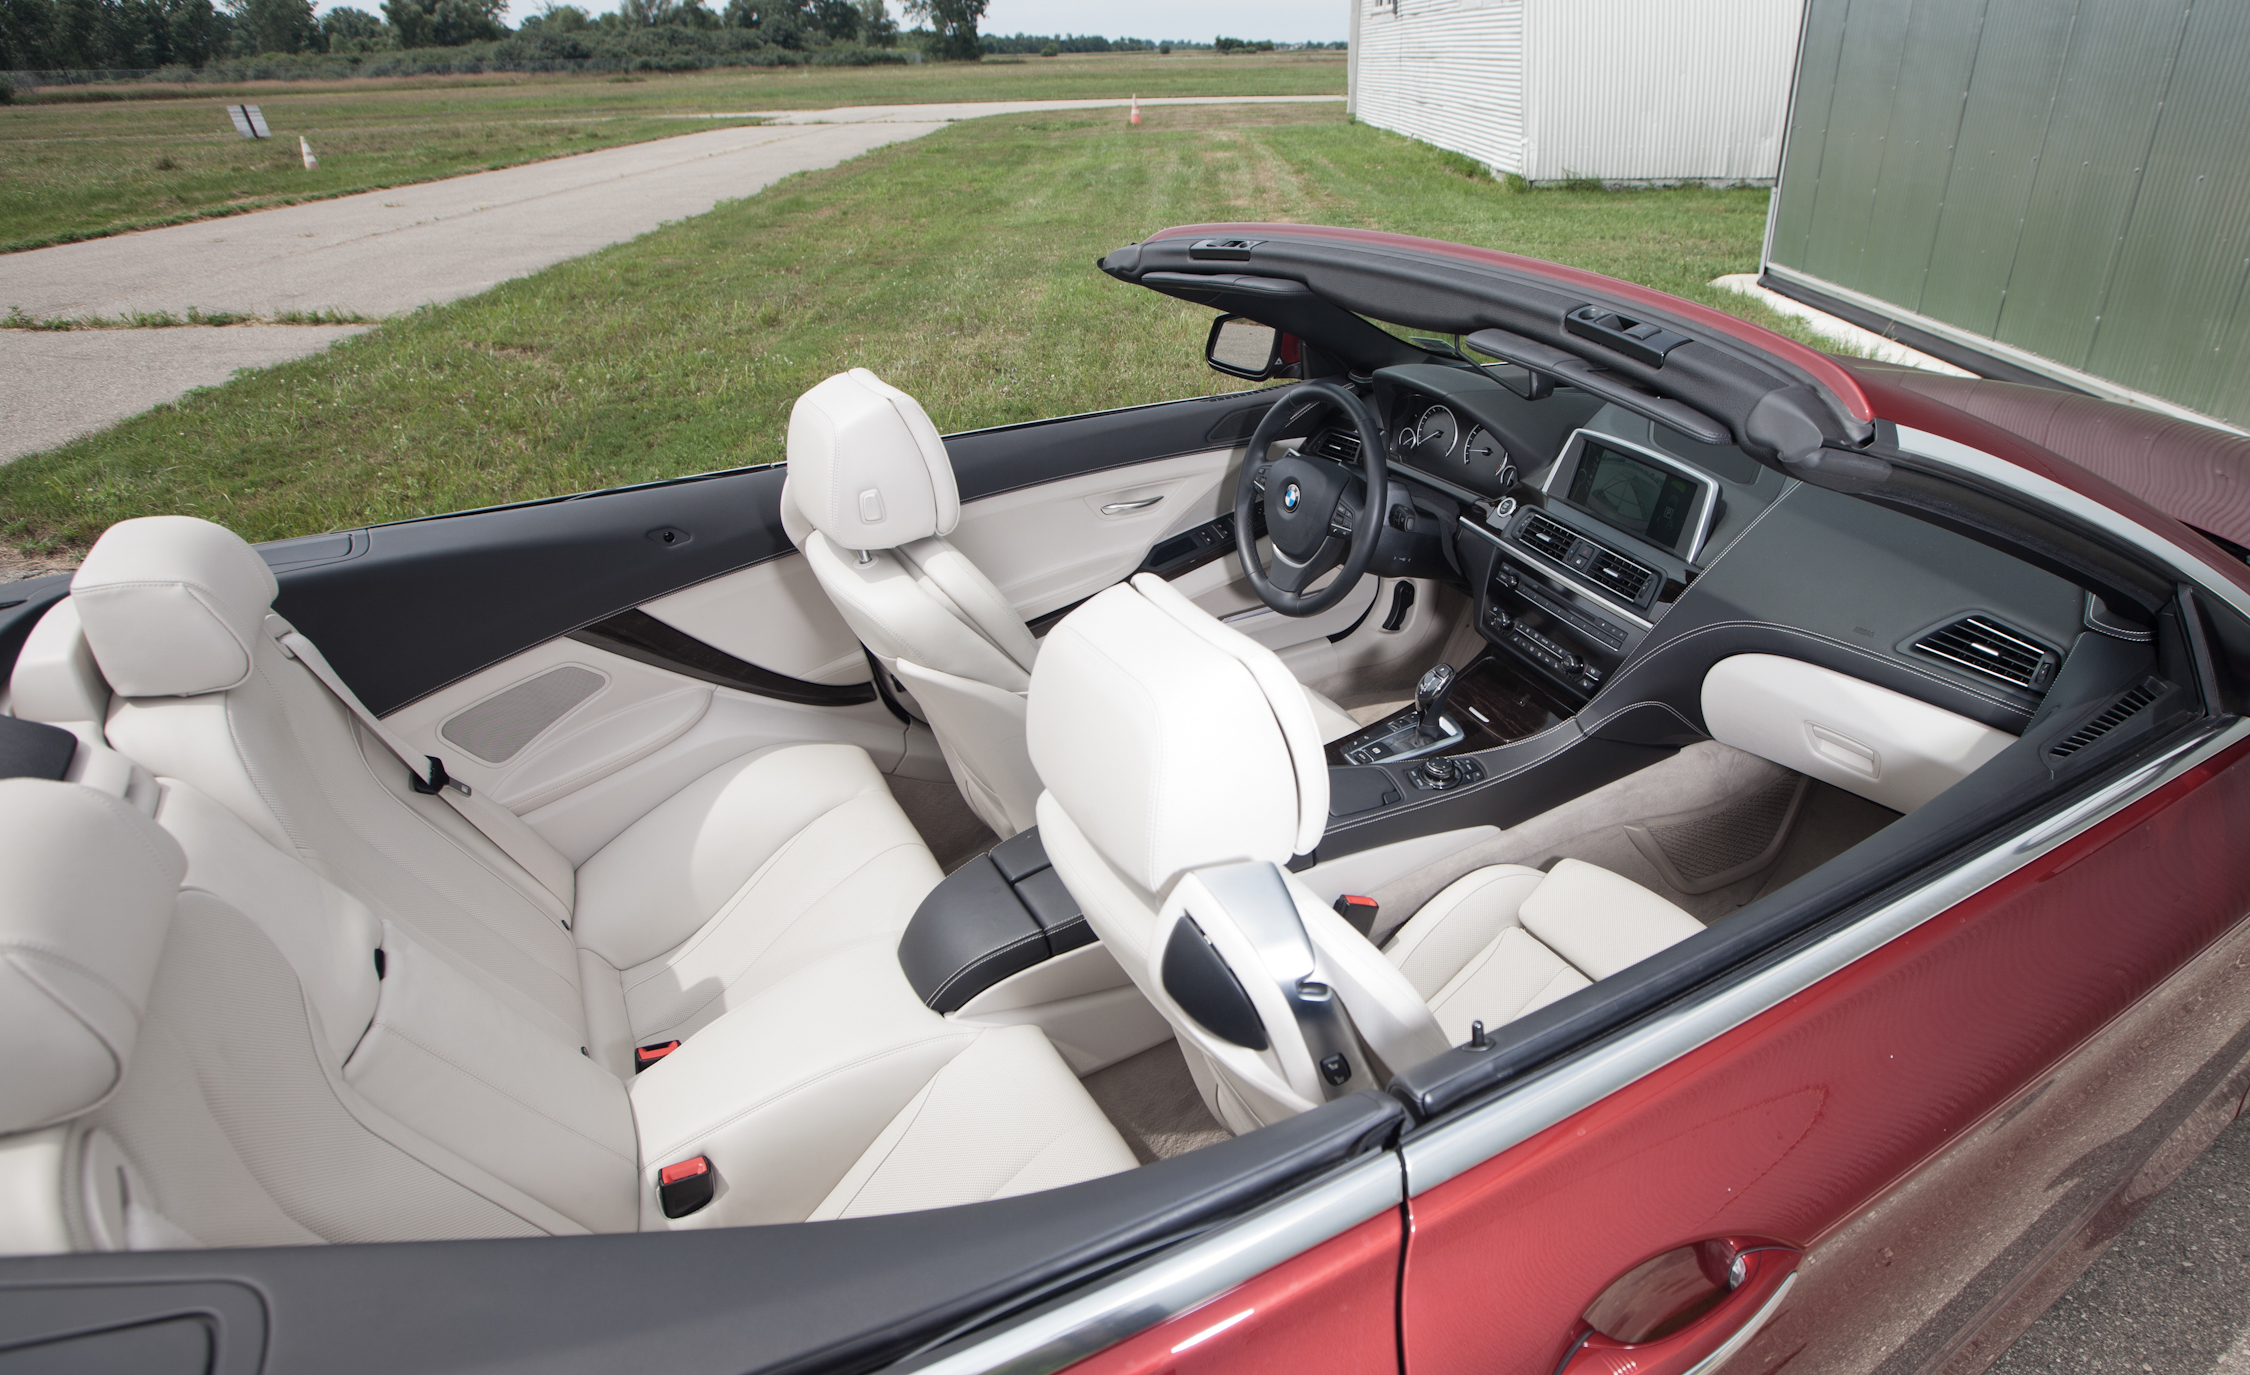 2012 BMW 650i Convertible Interior (Photo 5 of 19)